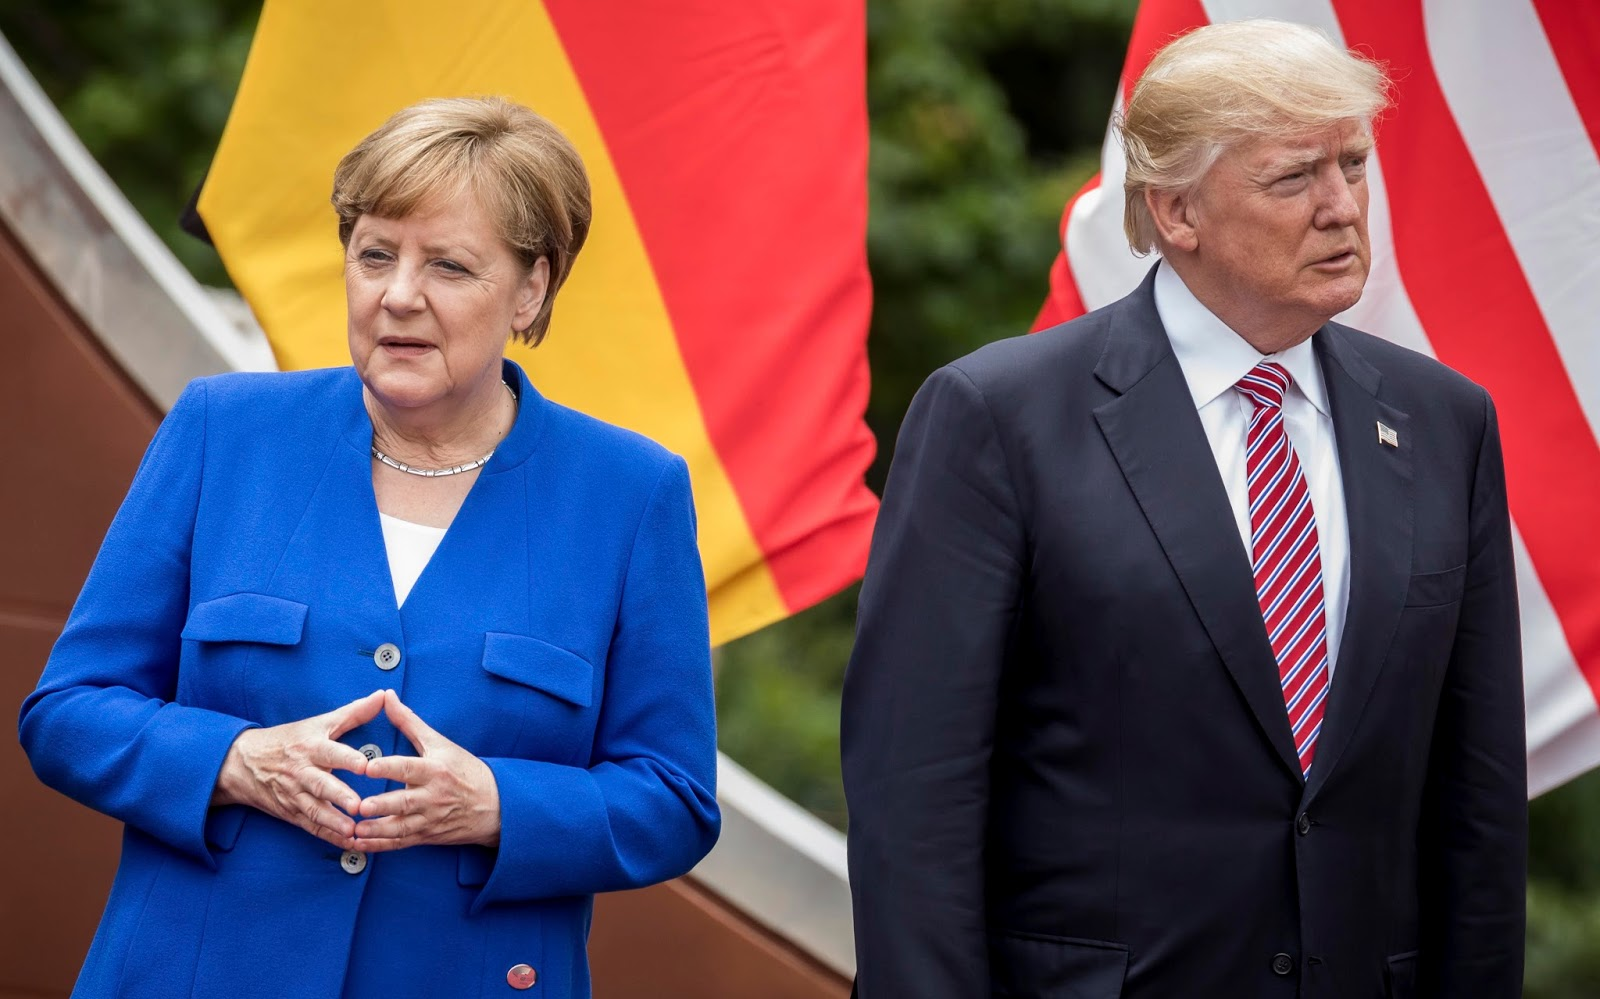 """German Chancellor Angela Merkel stands next to US President Donald Trump during the """"family portrait"""" at the G7 summit in Taormina in Sicily, Italy, 26 May 2017. The heads of the G7 states meet in Sicily from 26 May until 27 May 2017 to negotiate and talk about global topics. Photo by: Michael Kappeler/picture-alliance/dpa/AP Images"""